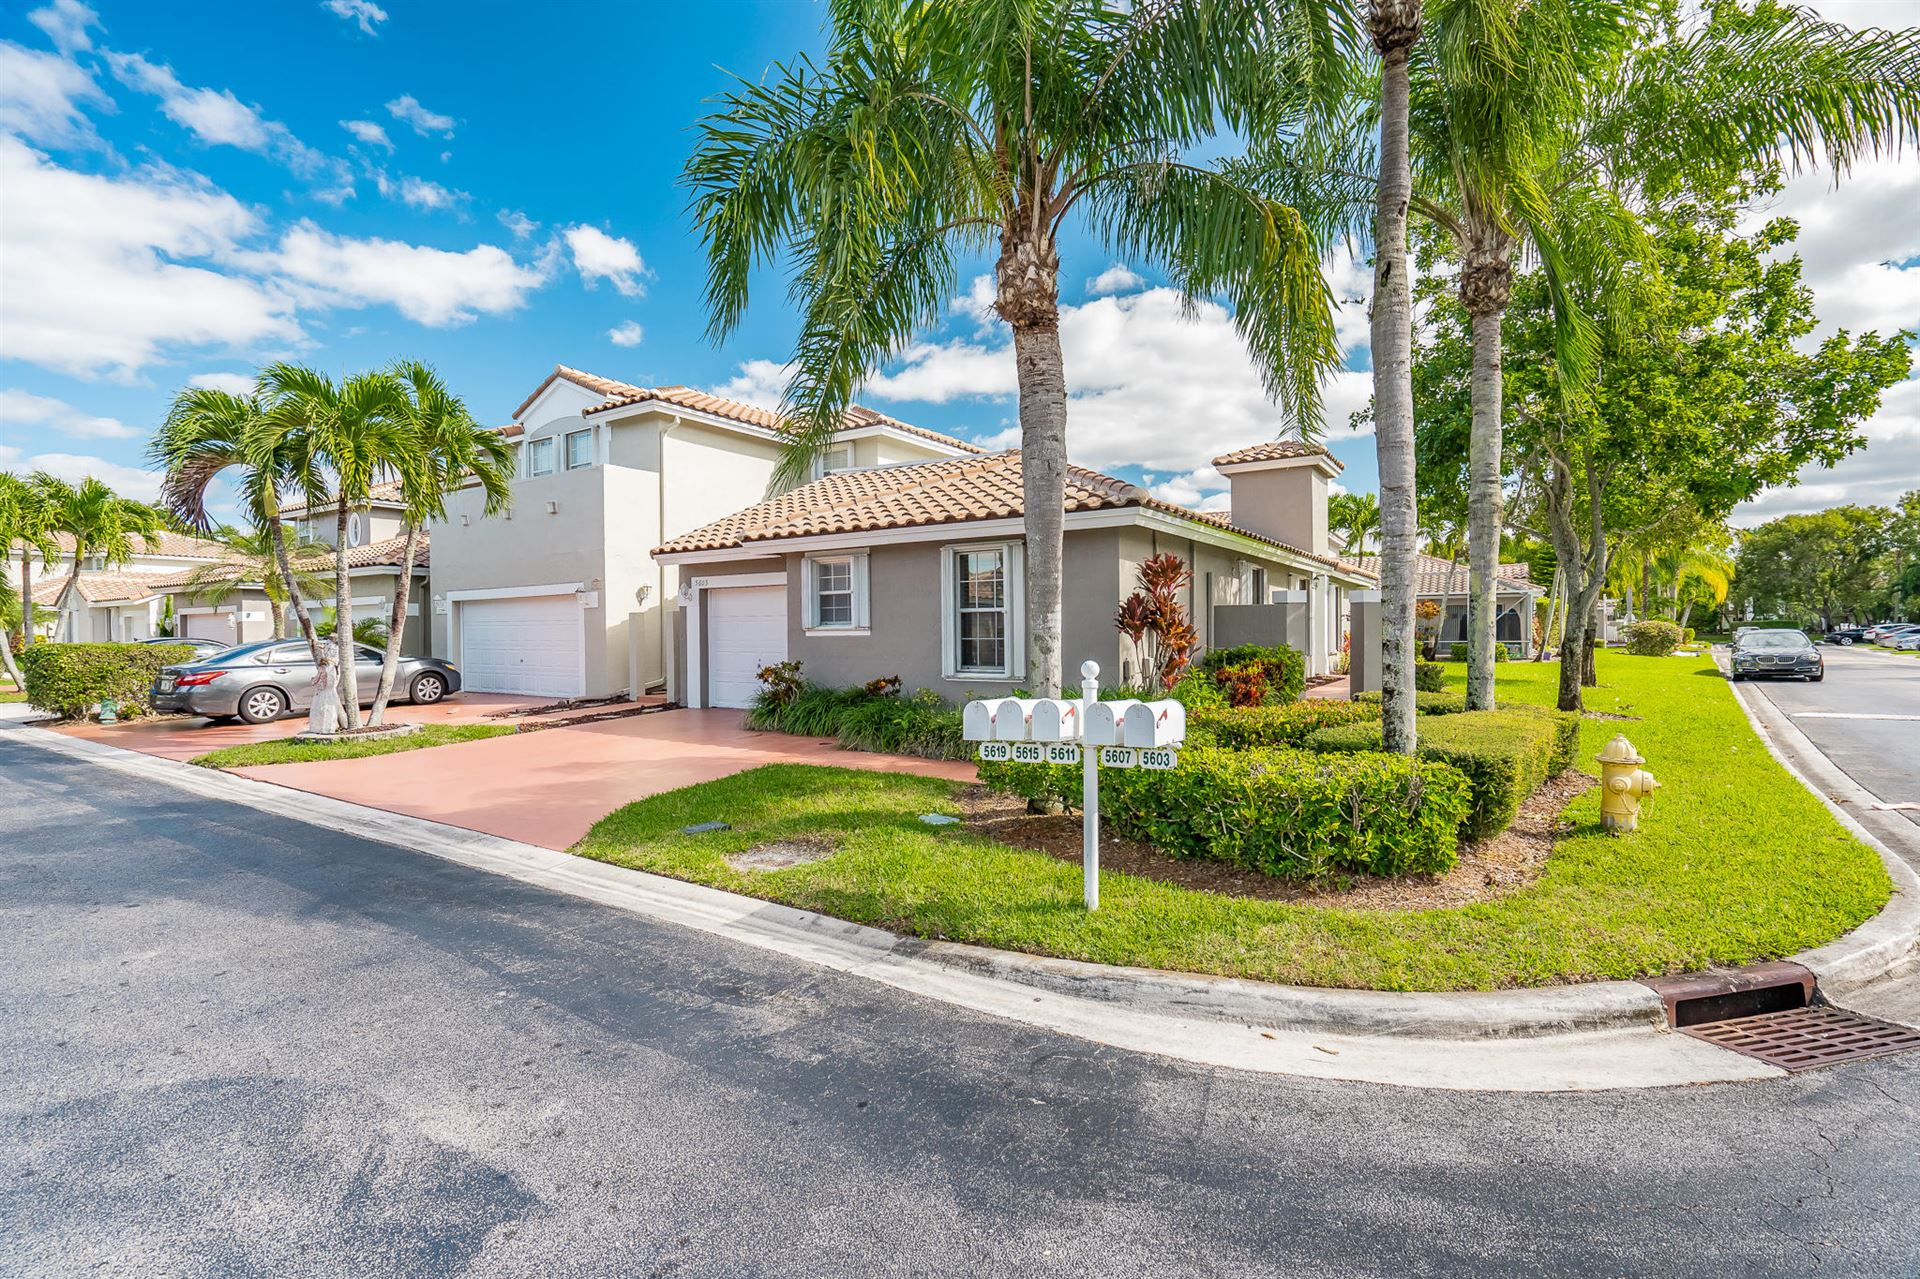 5603 NW 118th Drive, Coral Springs, FL 33076 - #: RX-10681698